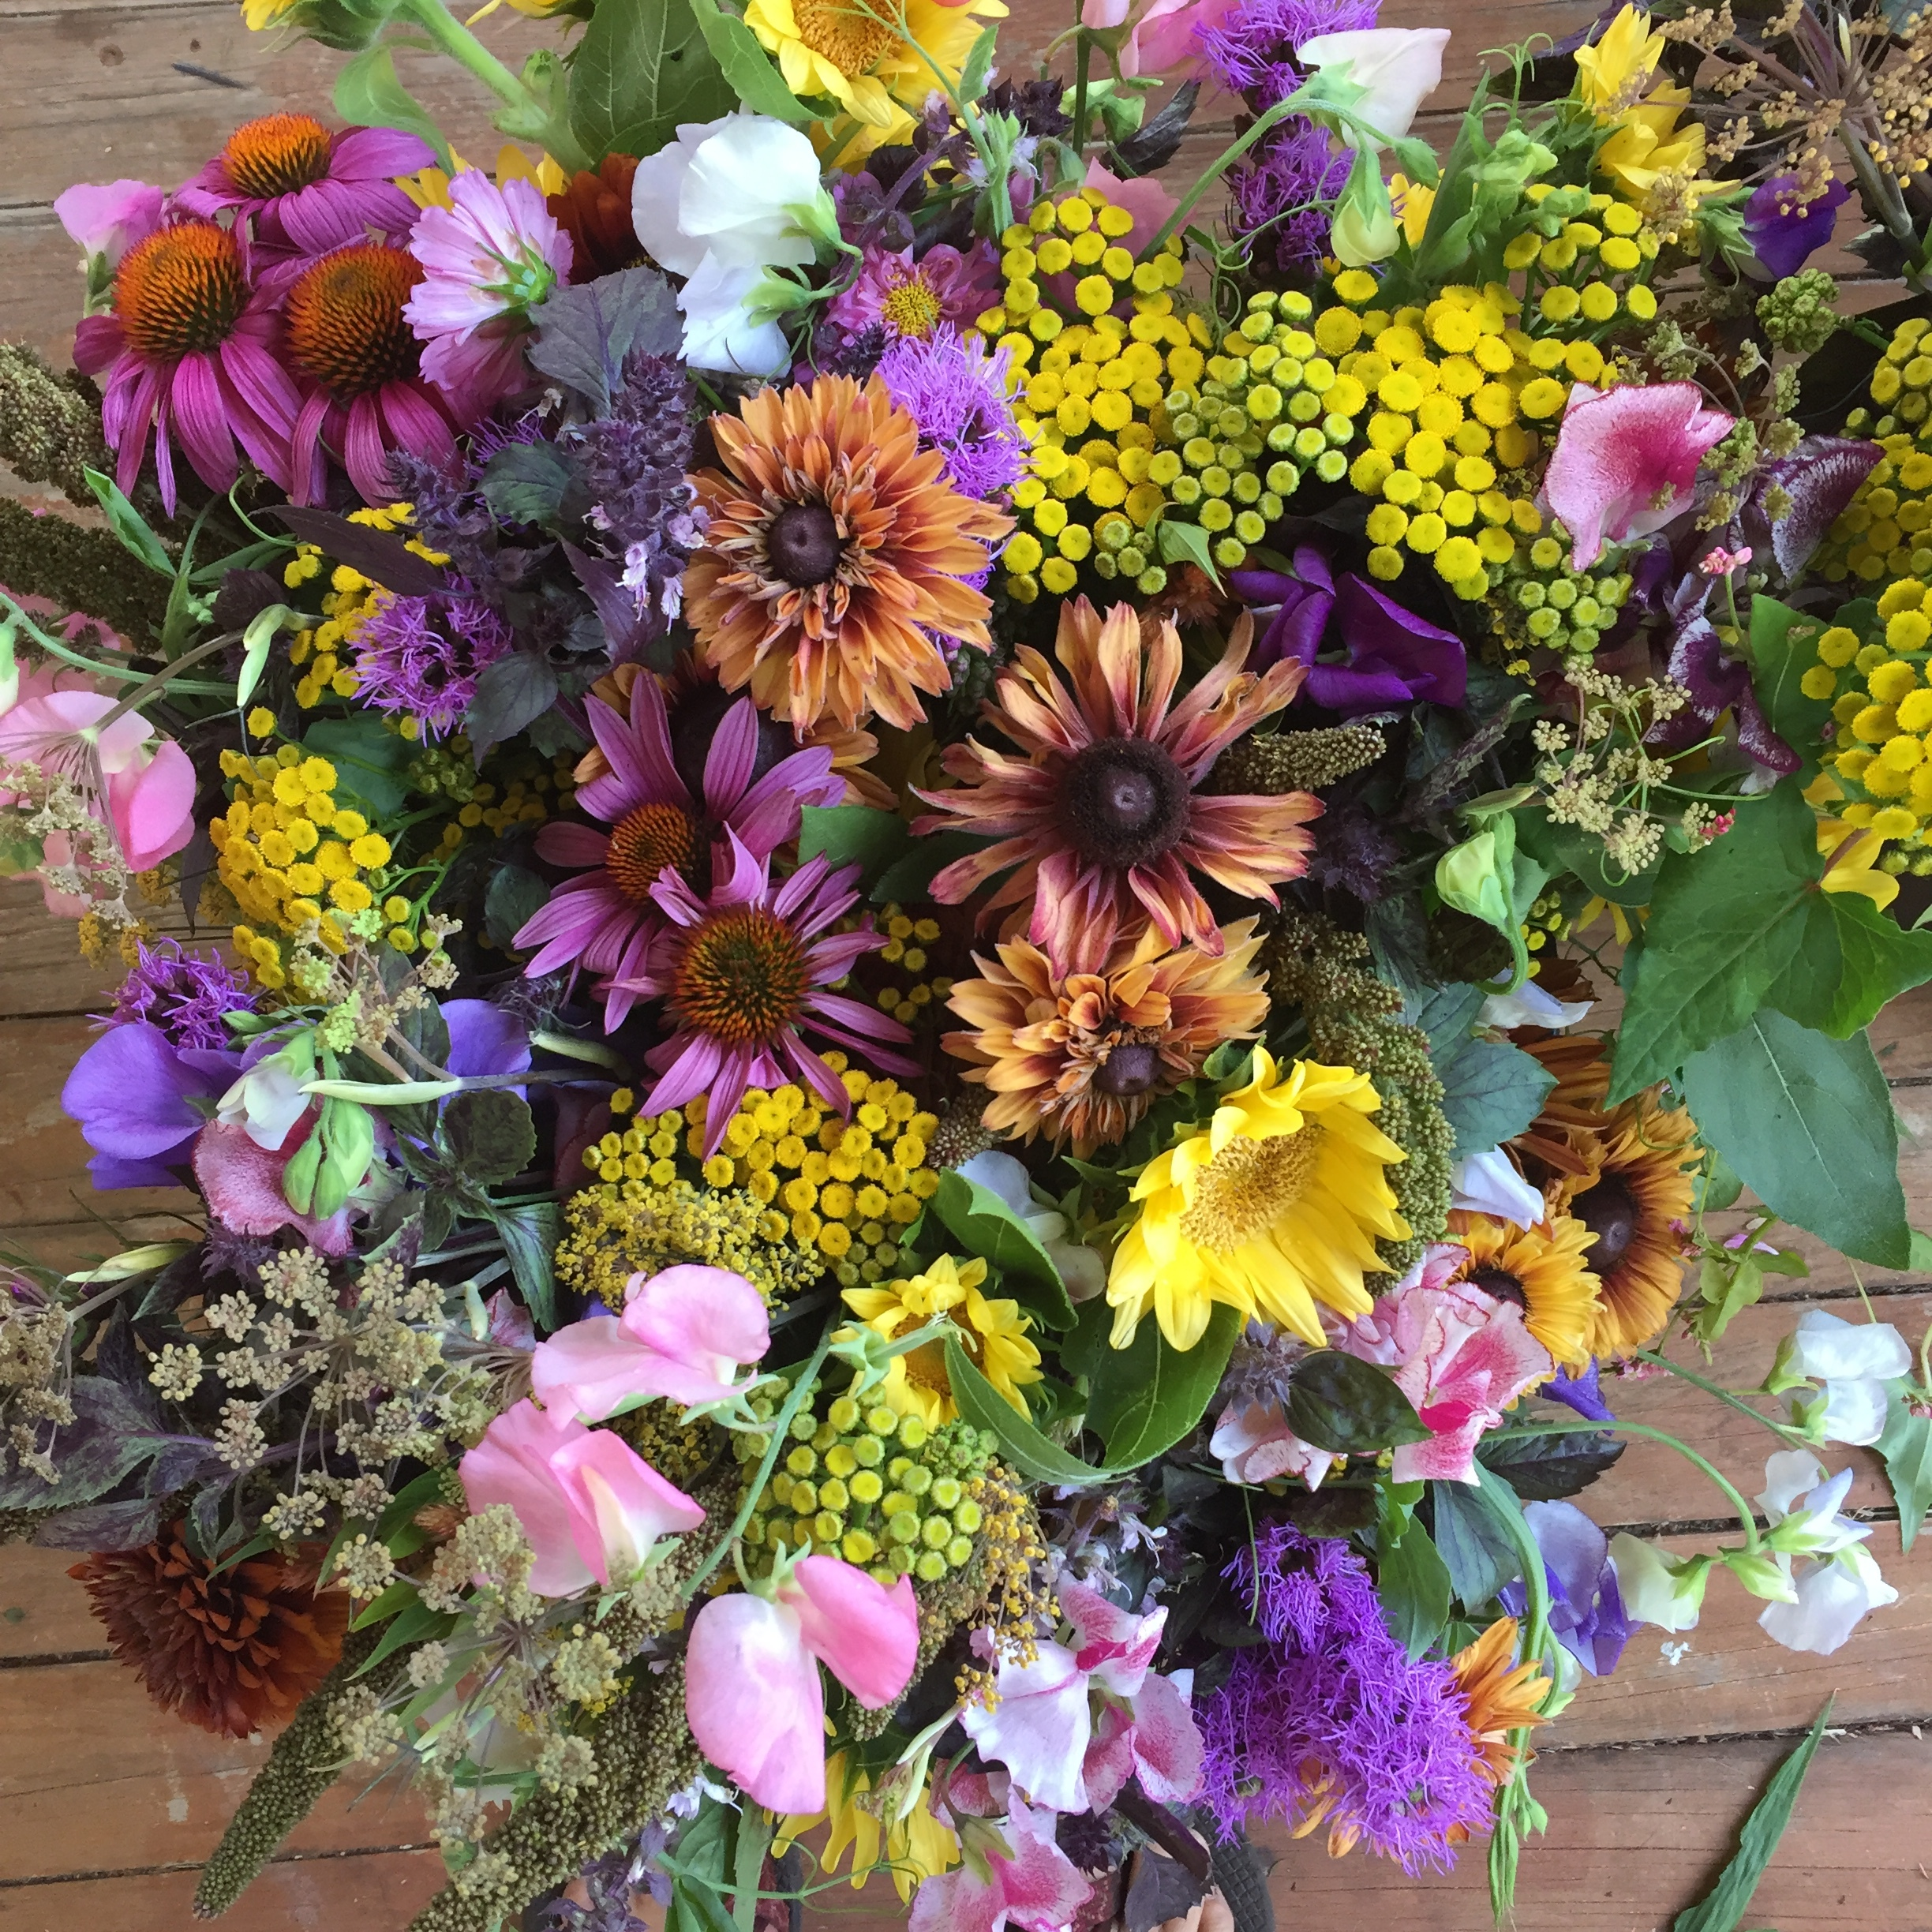 Bucket Share - July thru September - $300  A bountiful floral bucket, delivered Thursday afternoons.   I'll deliver your first bucket and after that please place your used bucket on your porch and I will replace with another filled bucket!